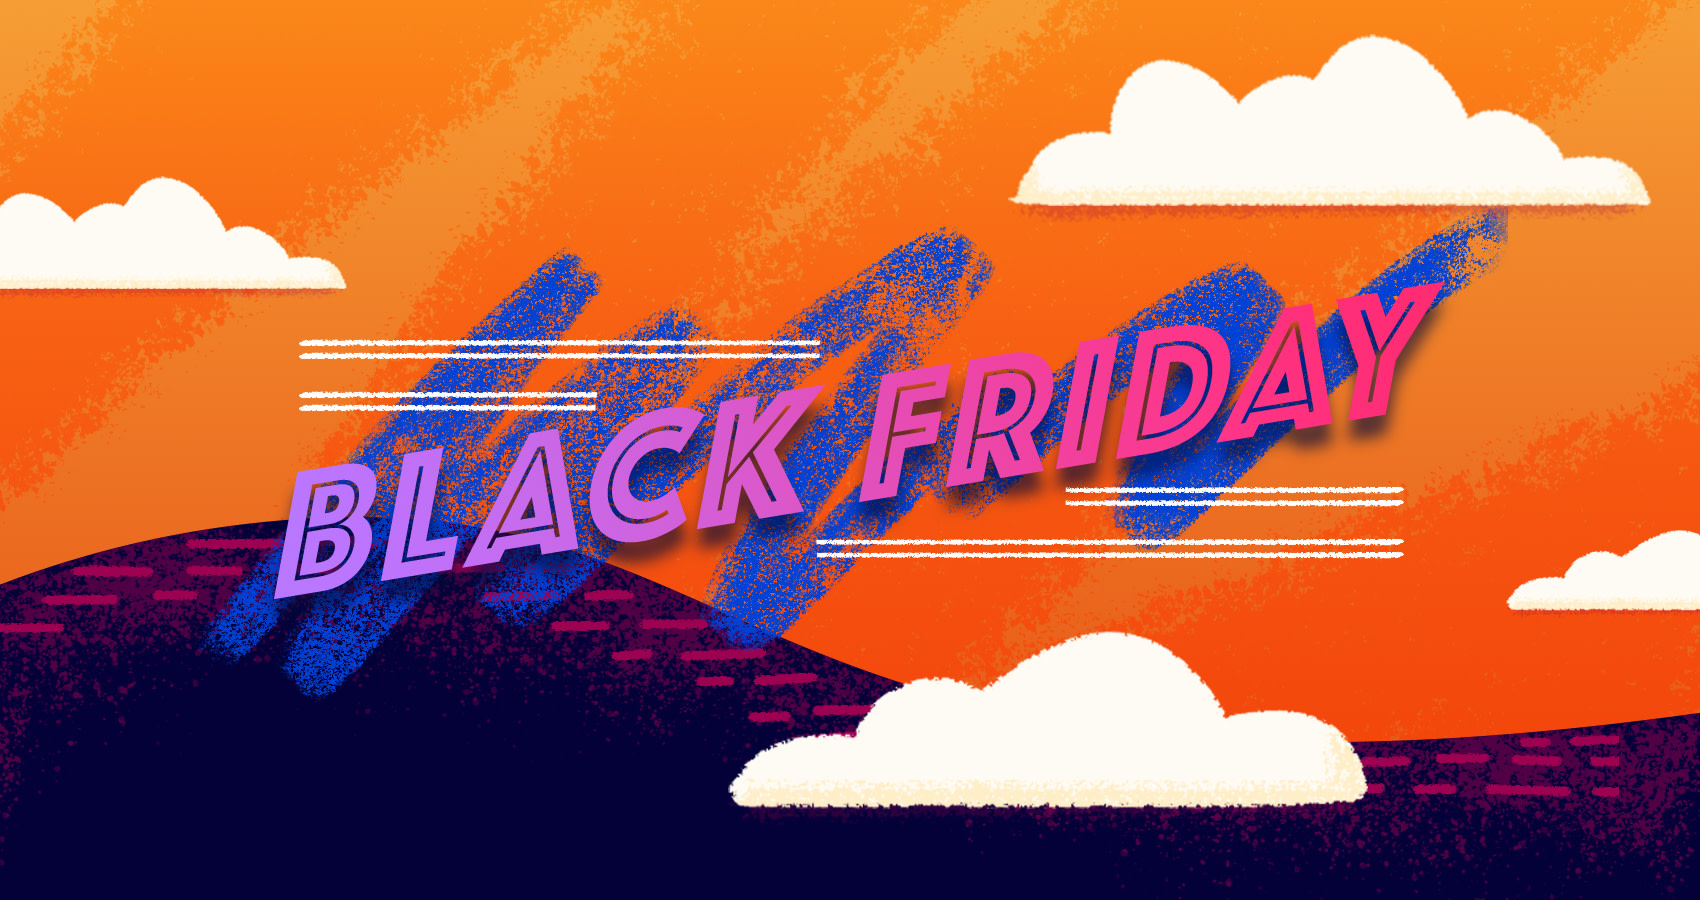 BlackFriday_BlogHeader